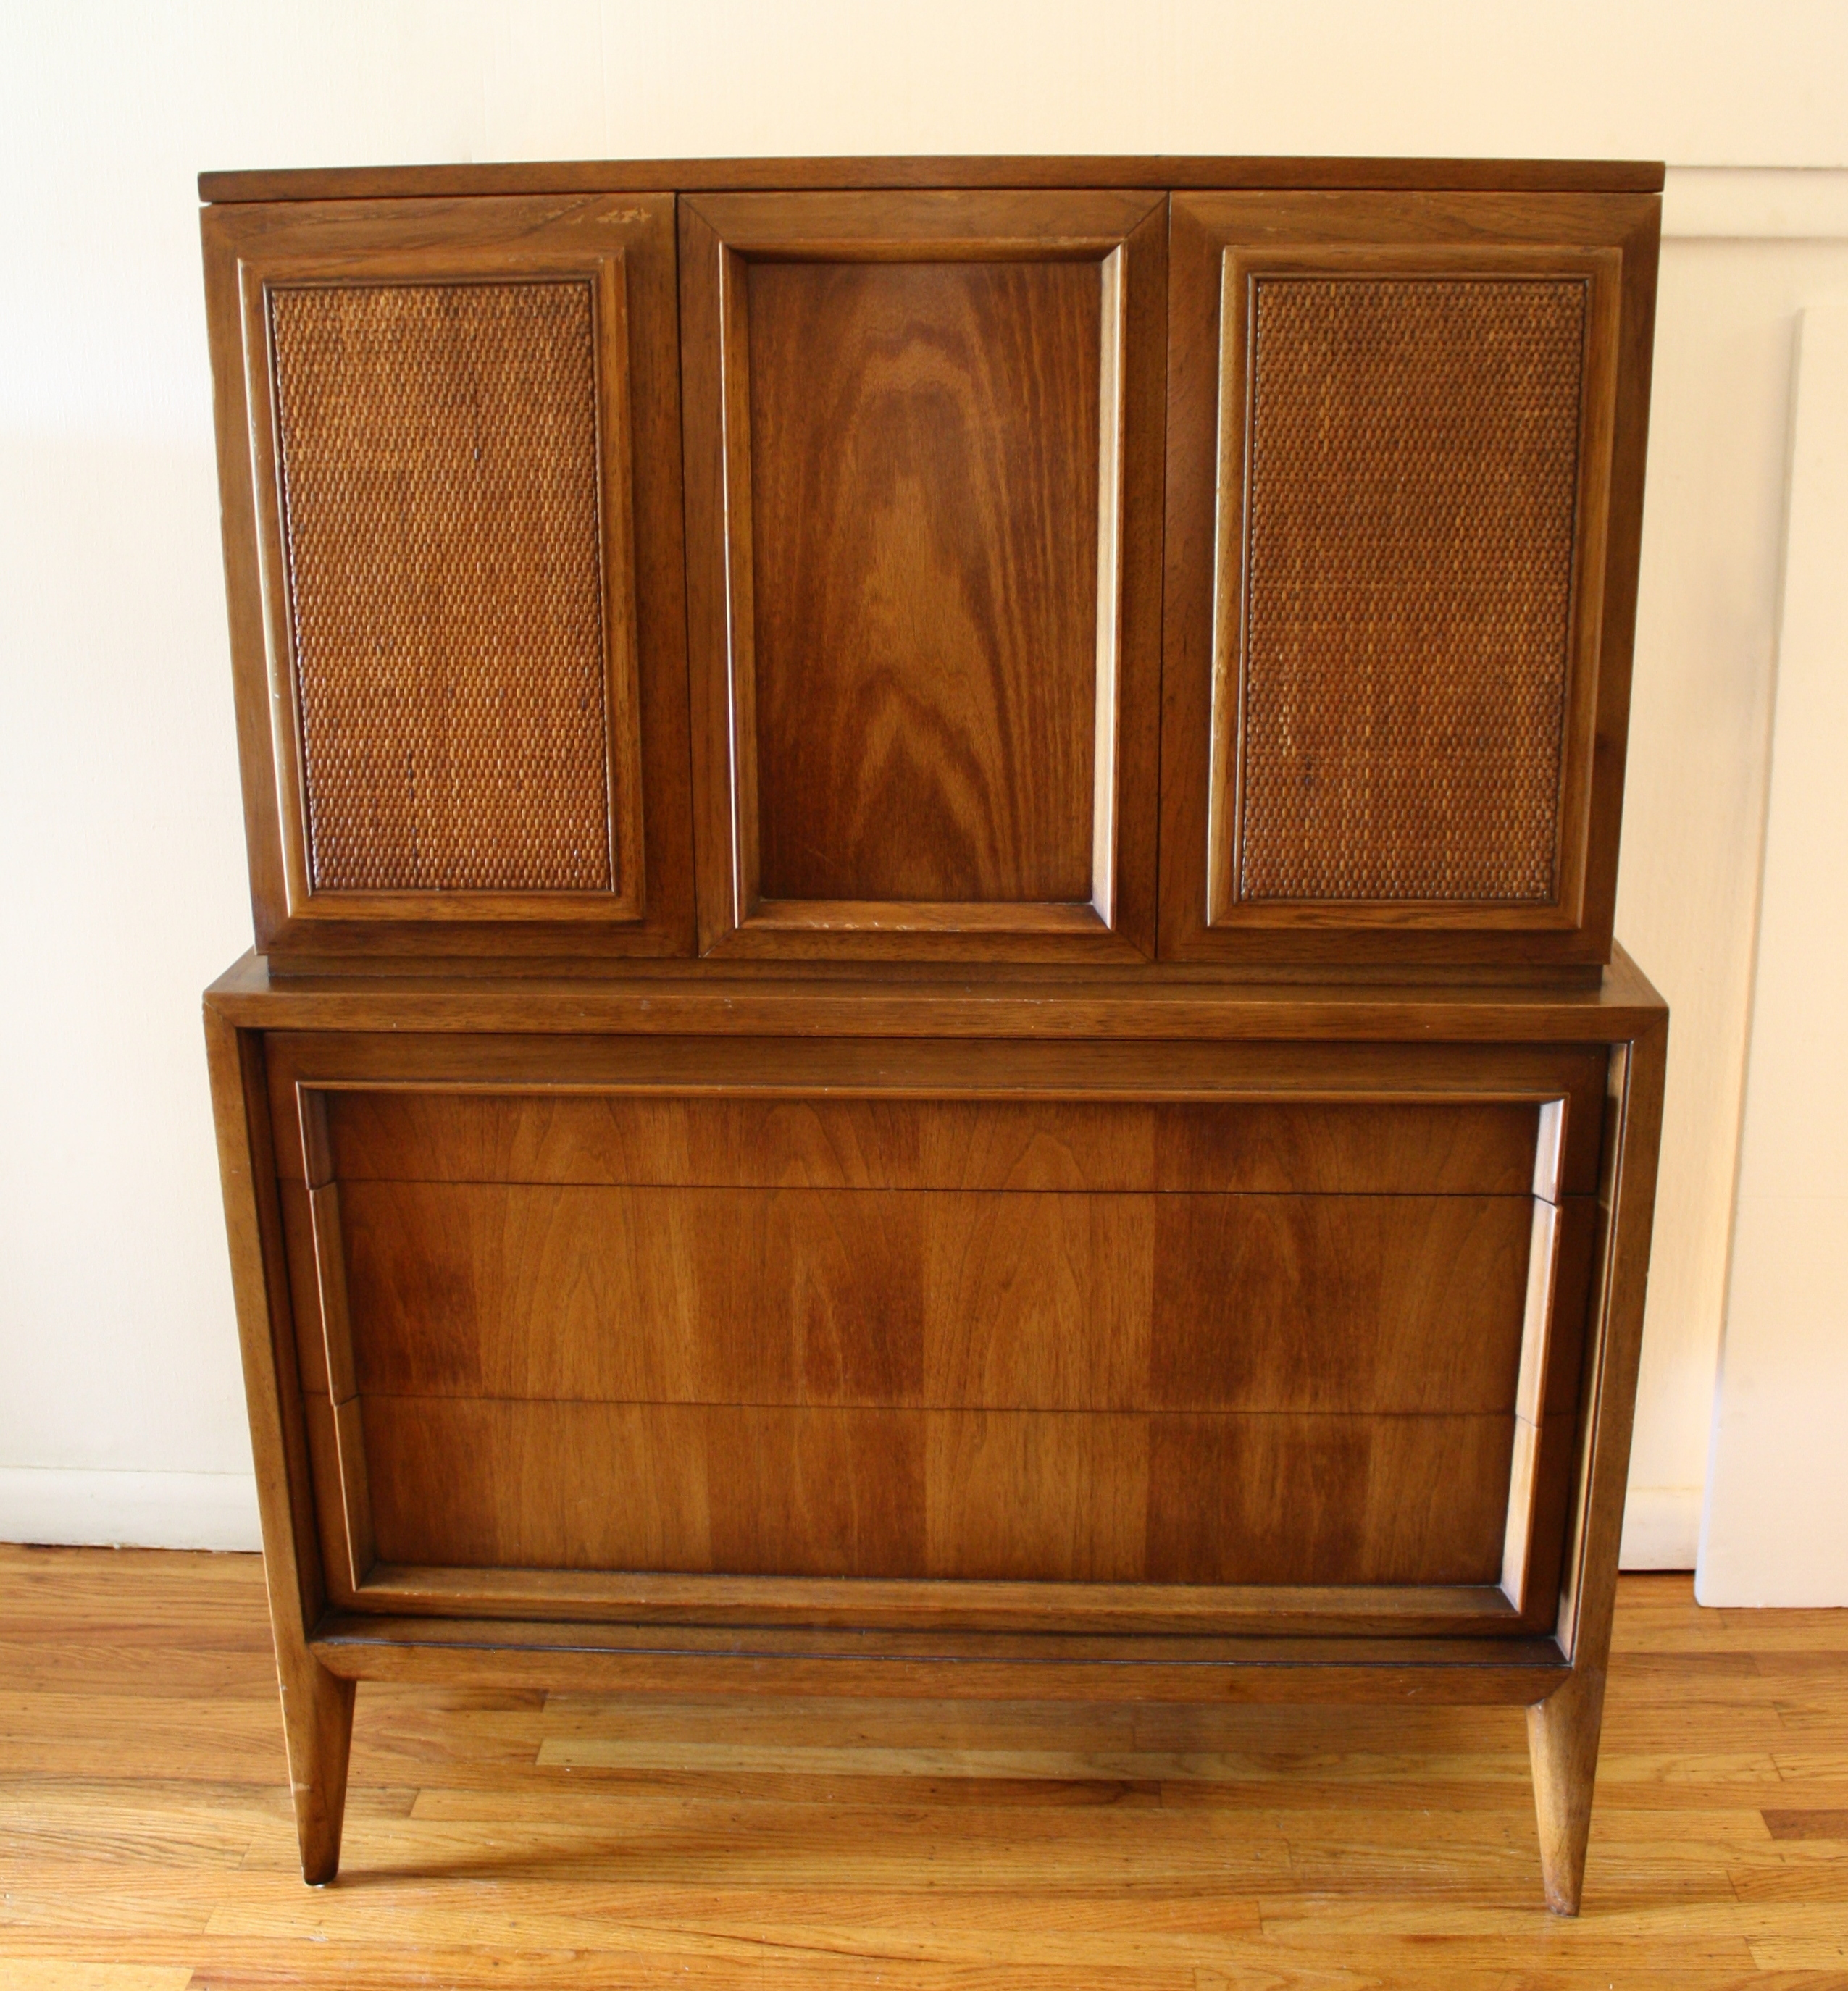 mcm armoire tall dresser with rattan doors 1